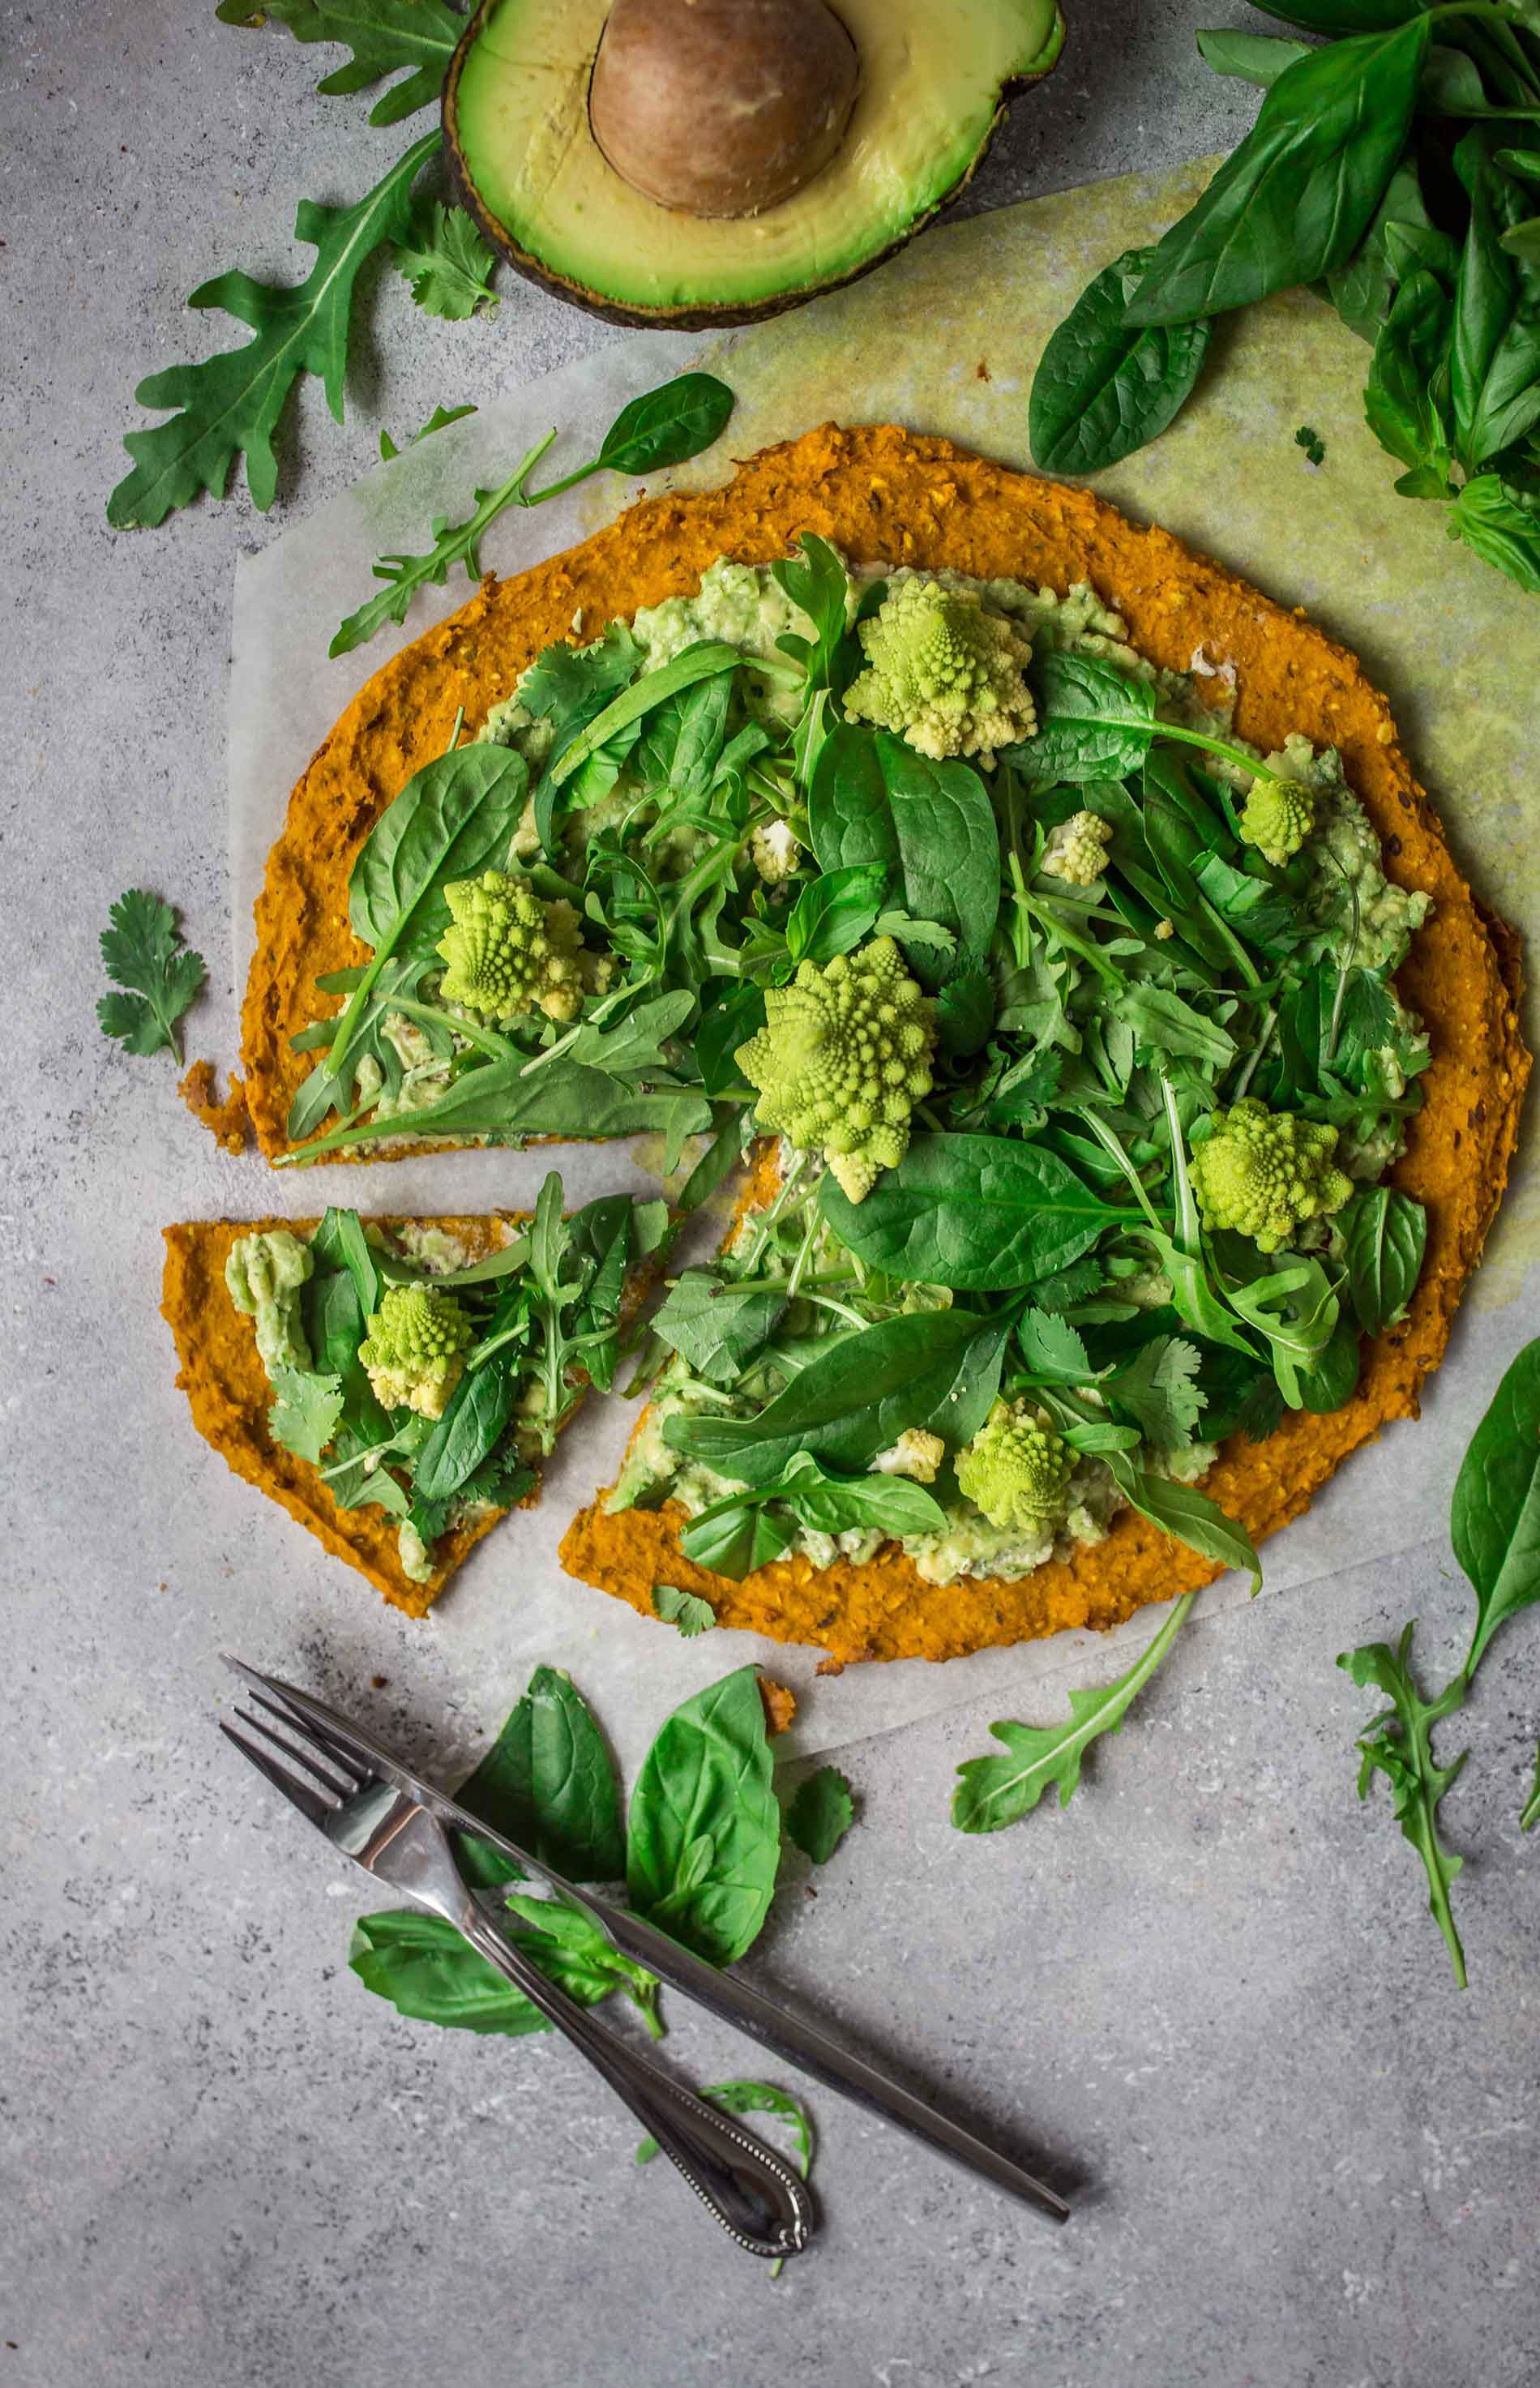 Vegan Sweet Potato Pizza with Guacamole Topping